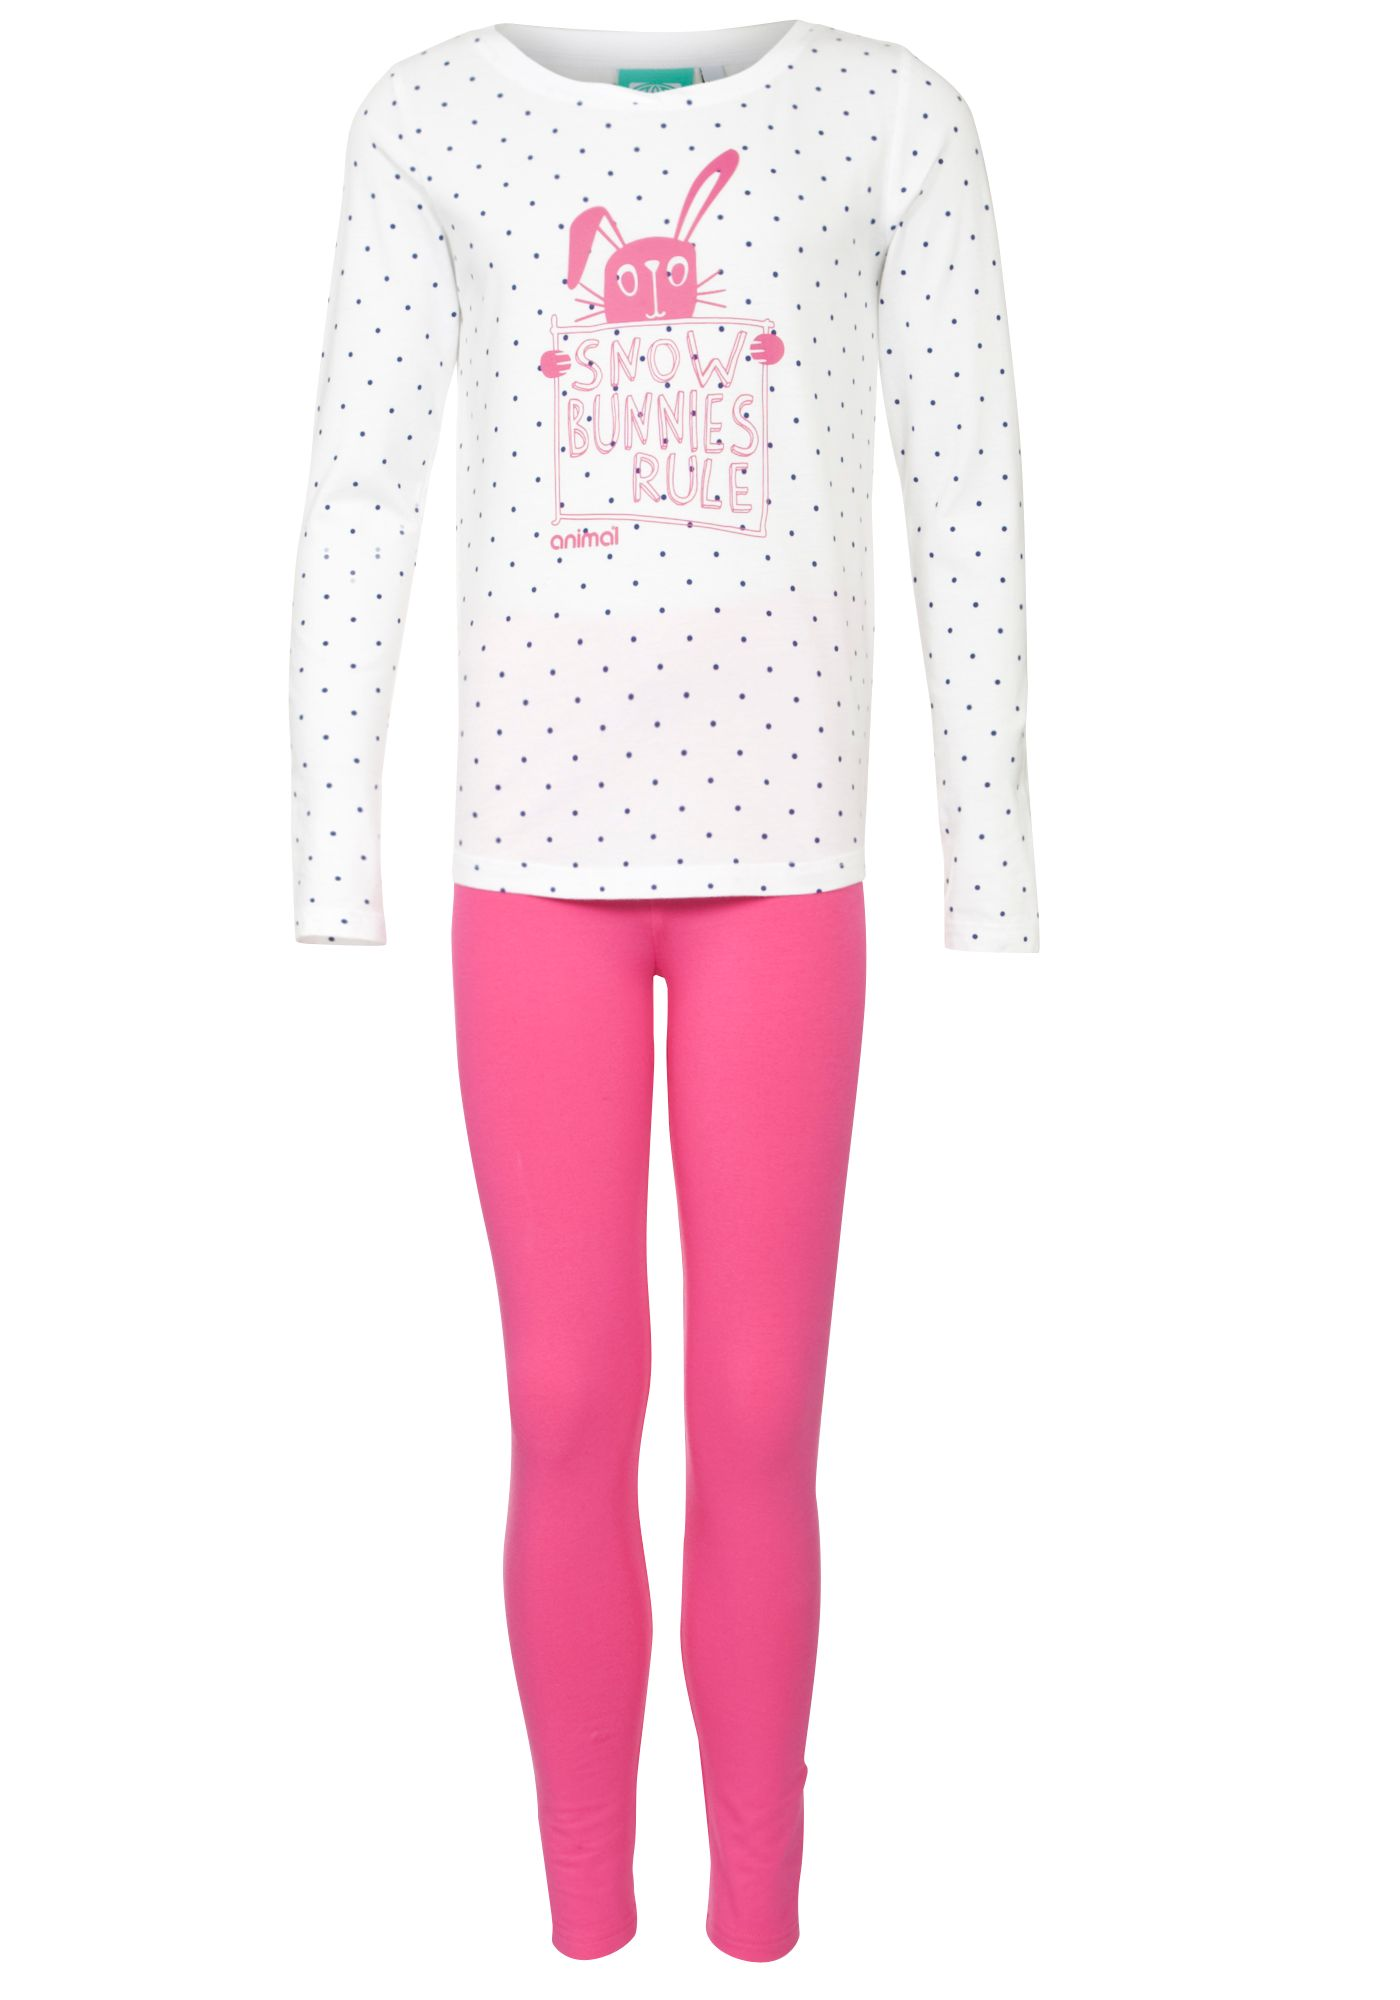 Animal Snow Bunny Long Sleeve Pyjamas, Pink